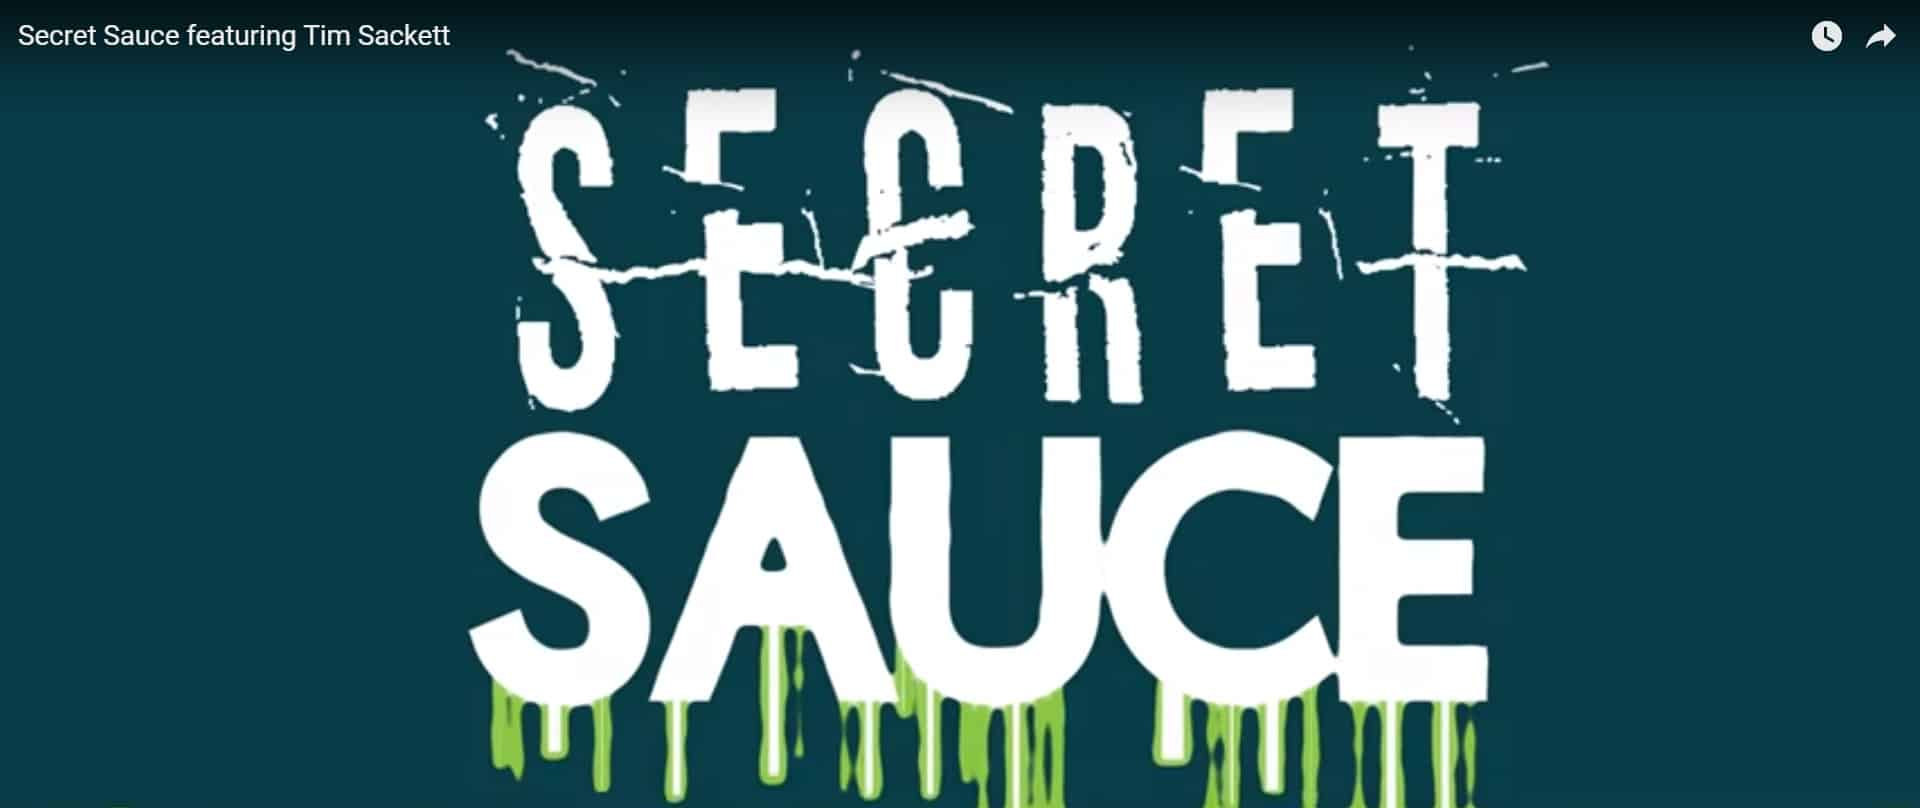 Secret Sauce: Getting Real With HR Data